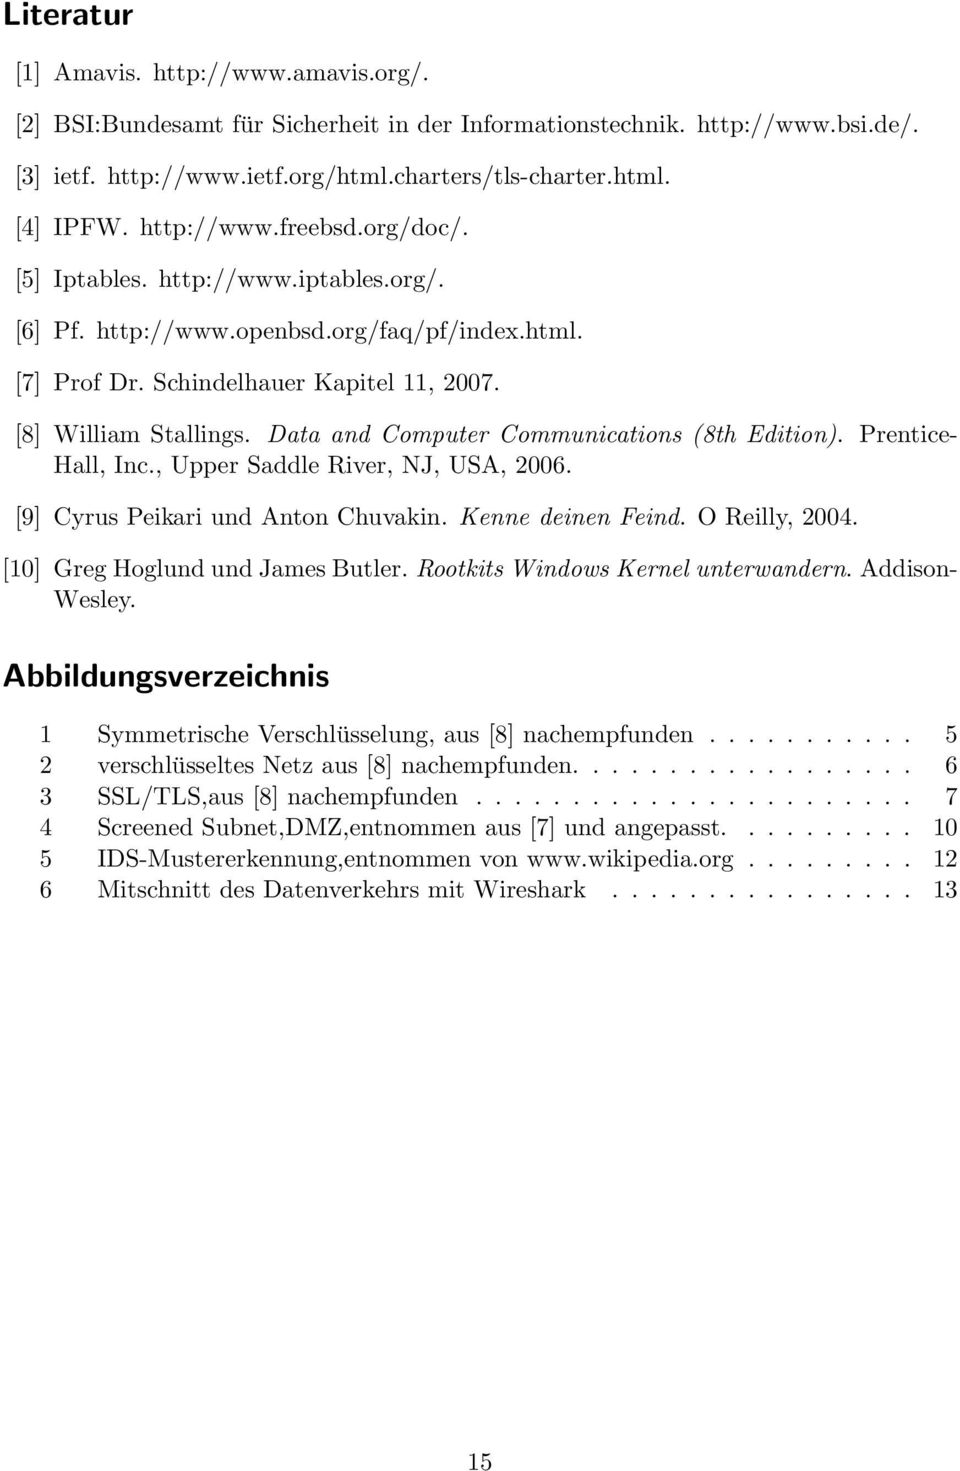 Data and Computer Communications (8th Edition). Prentice- Hall, Inc., Upper Saddle River, NJ, USA, 2006. [9] Cyrus Peikari und Anton Chuvakin. Kenne deinen Feind. O Reilly, 2004.